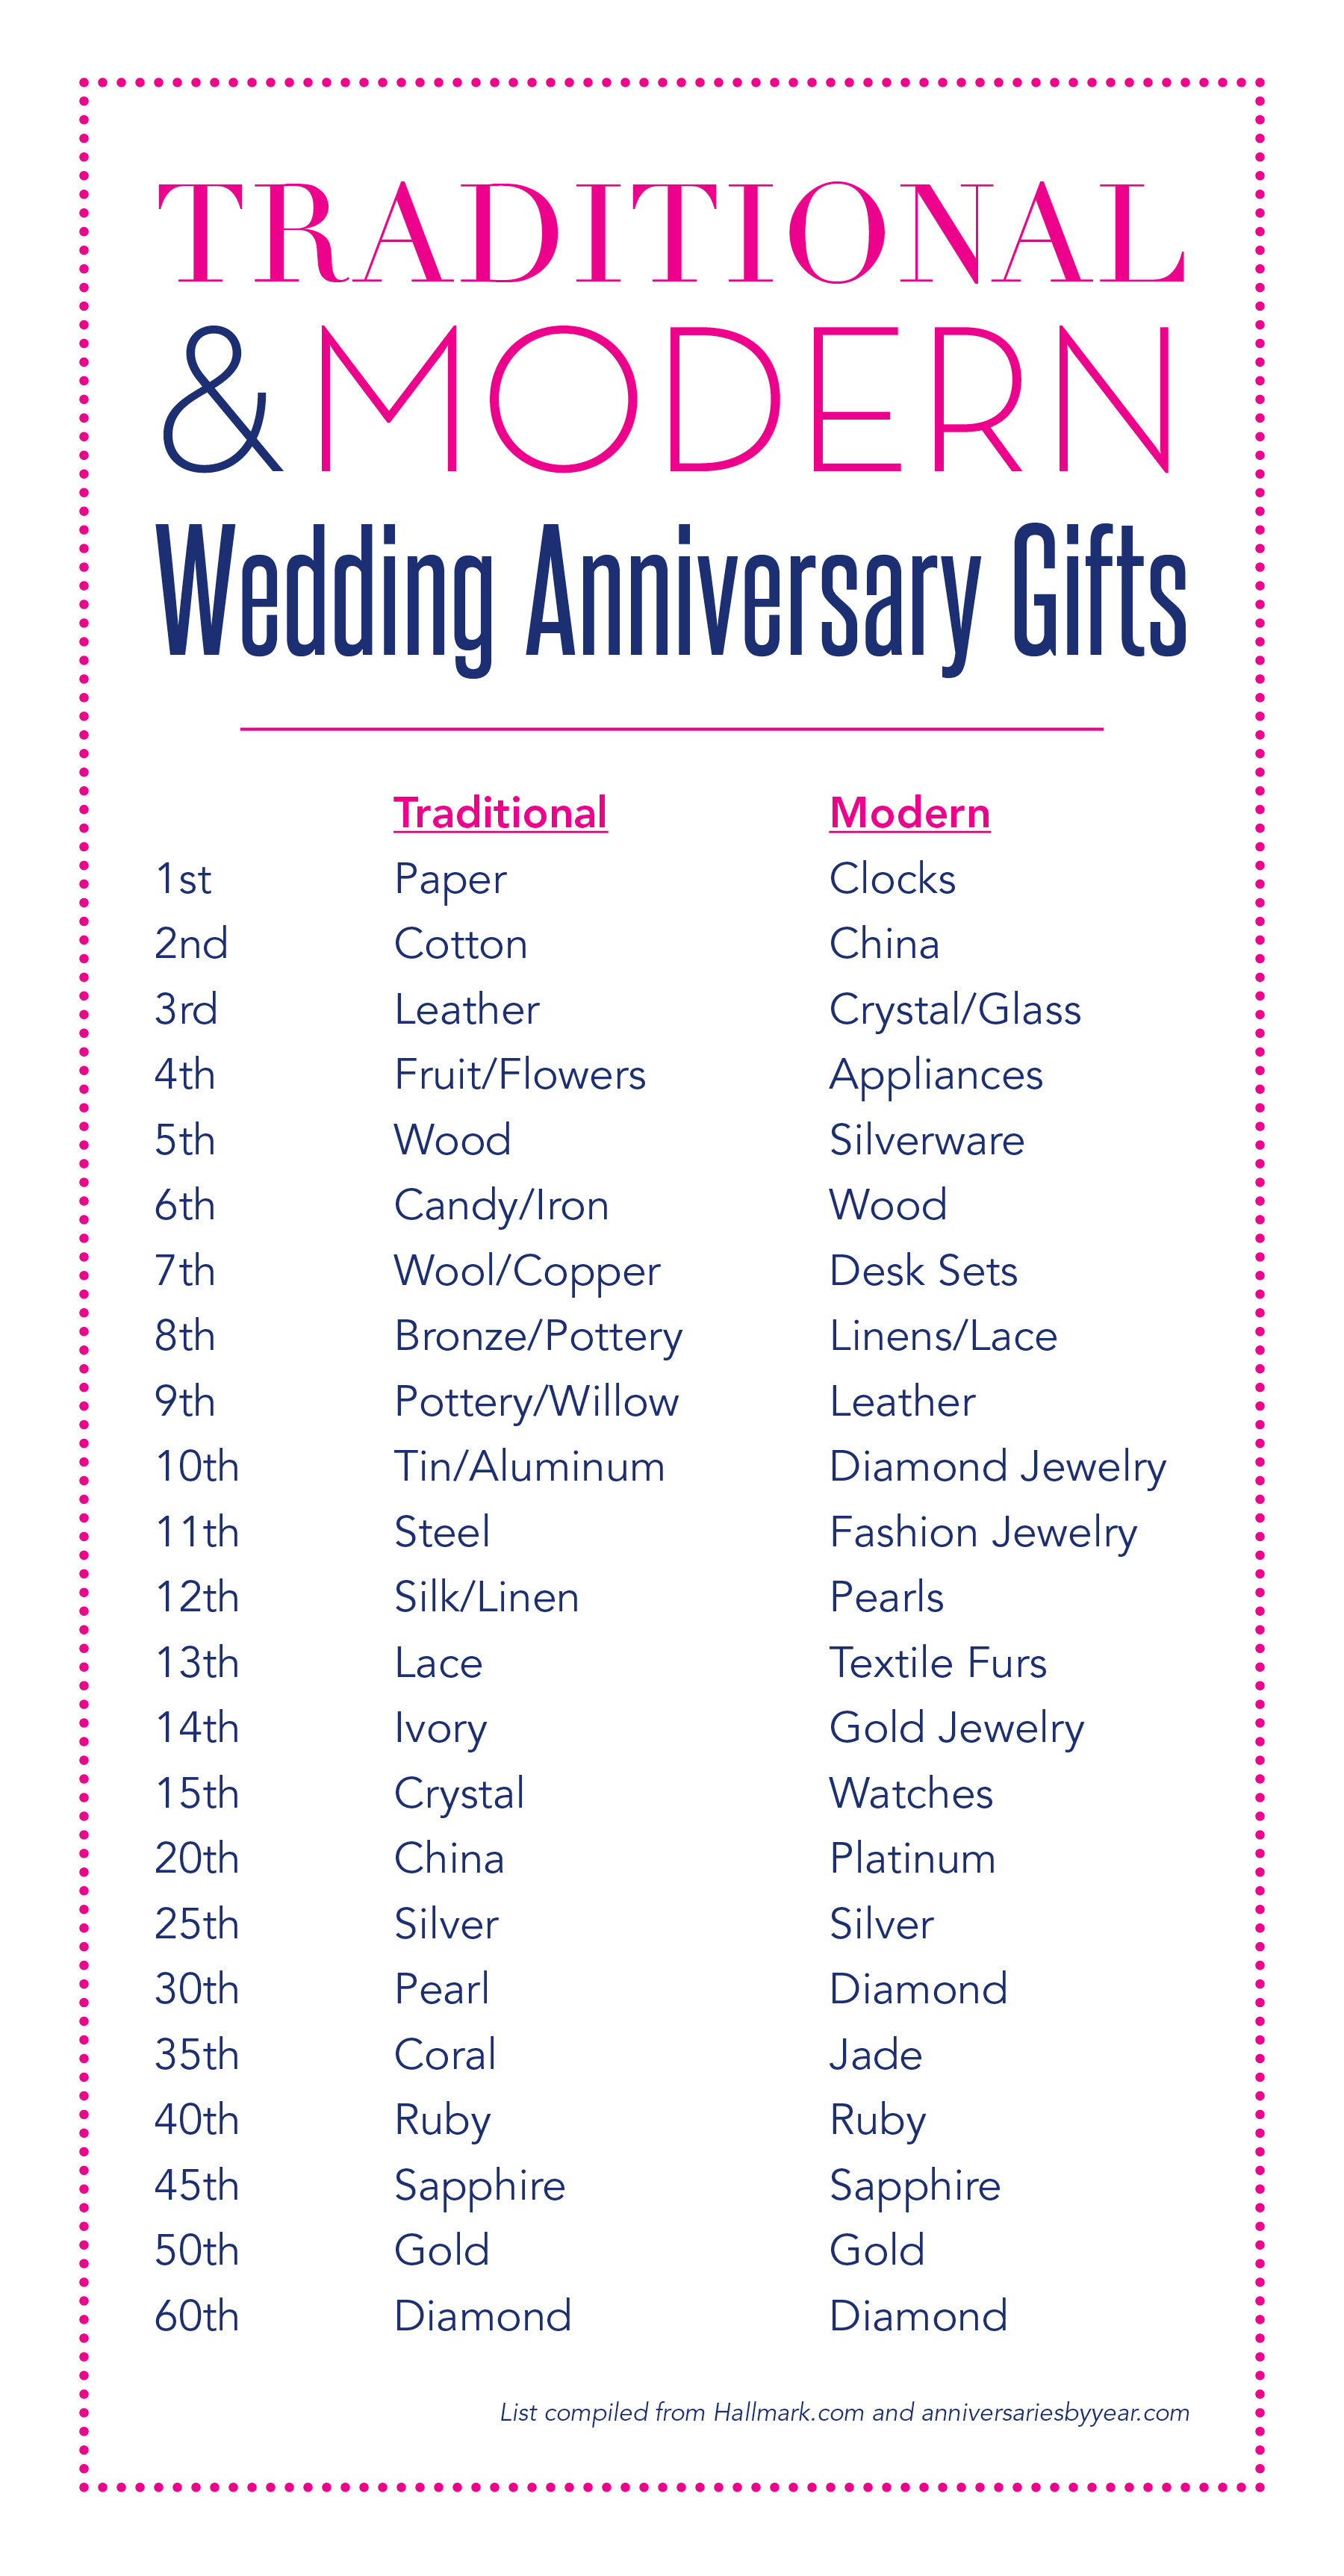 Wedding anniversary gifts hitchcock creative What are the traditional wedding anniversary gifts for each year